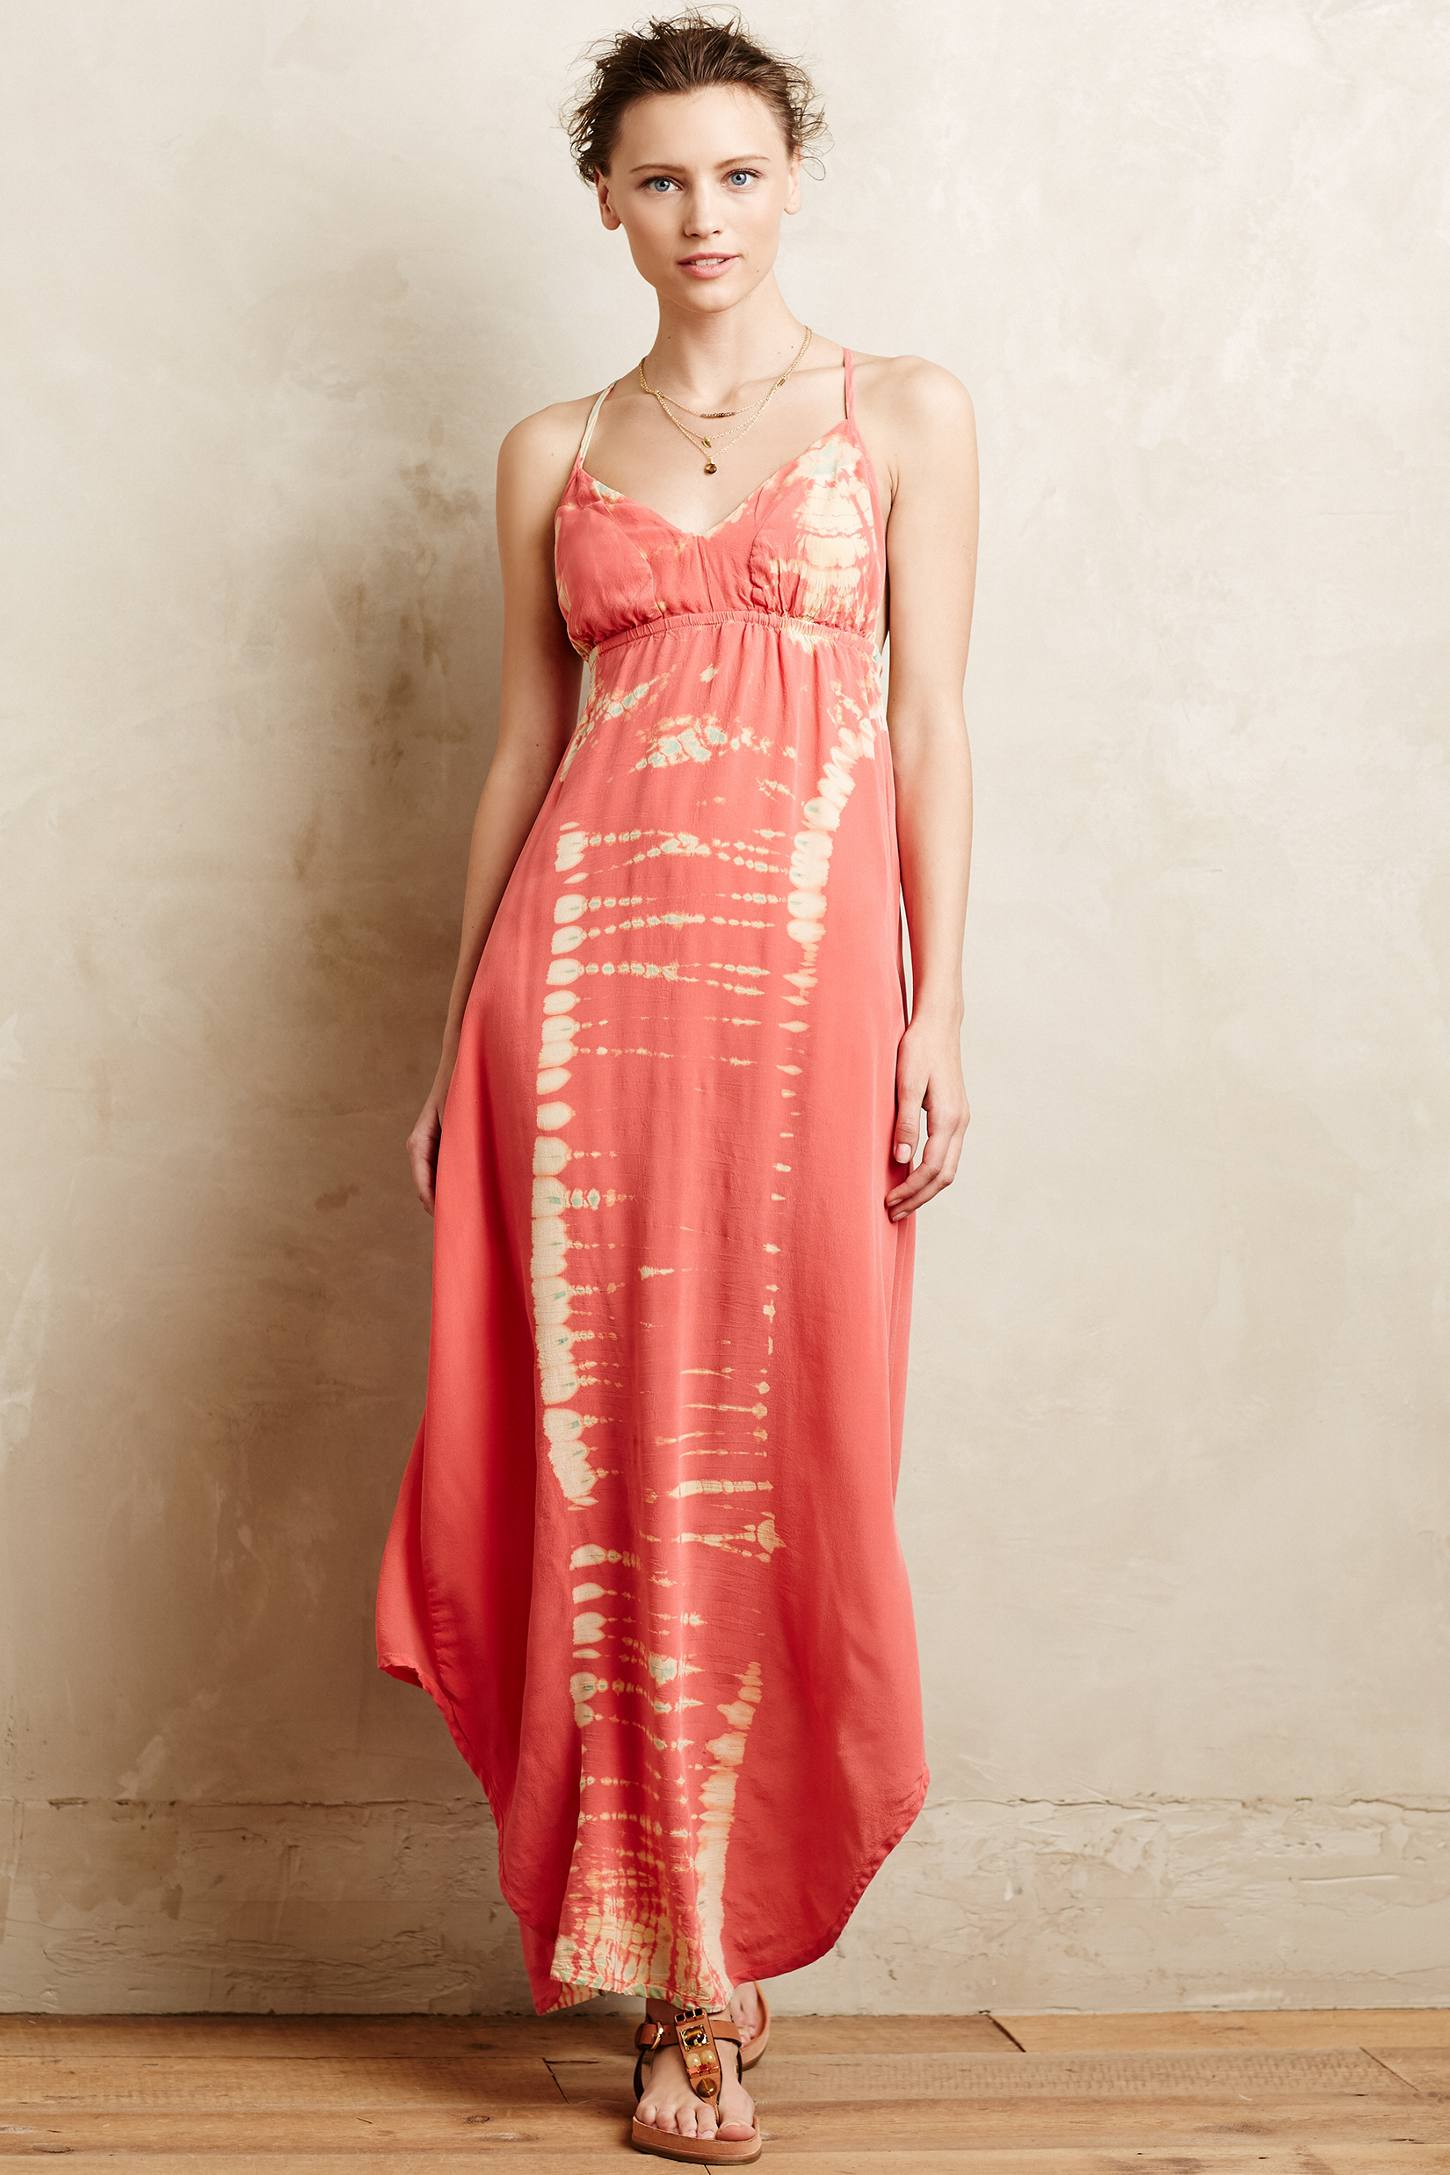 Gypsy 05 Viha Tie-dye Maxi Dress in Pink | Lyst